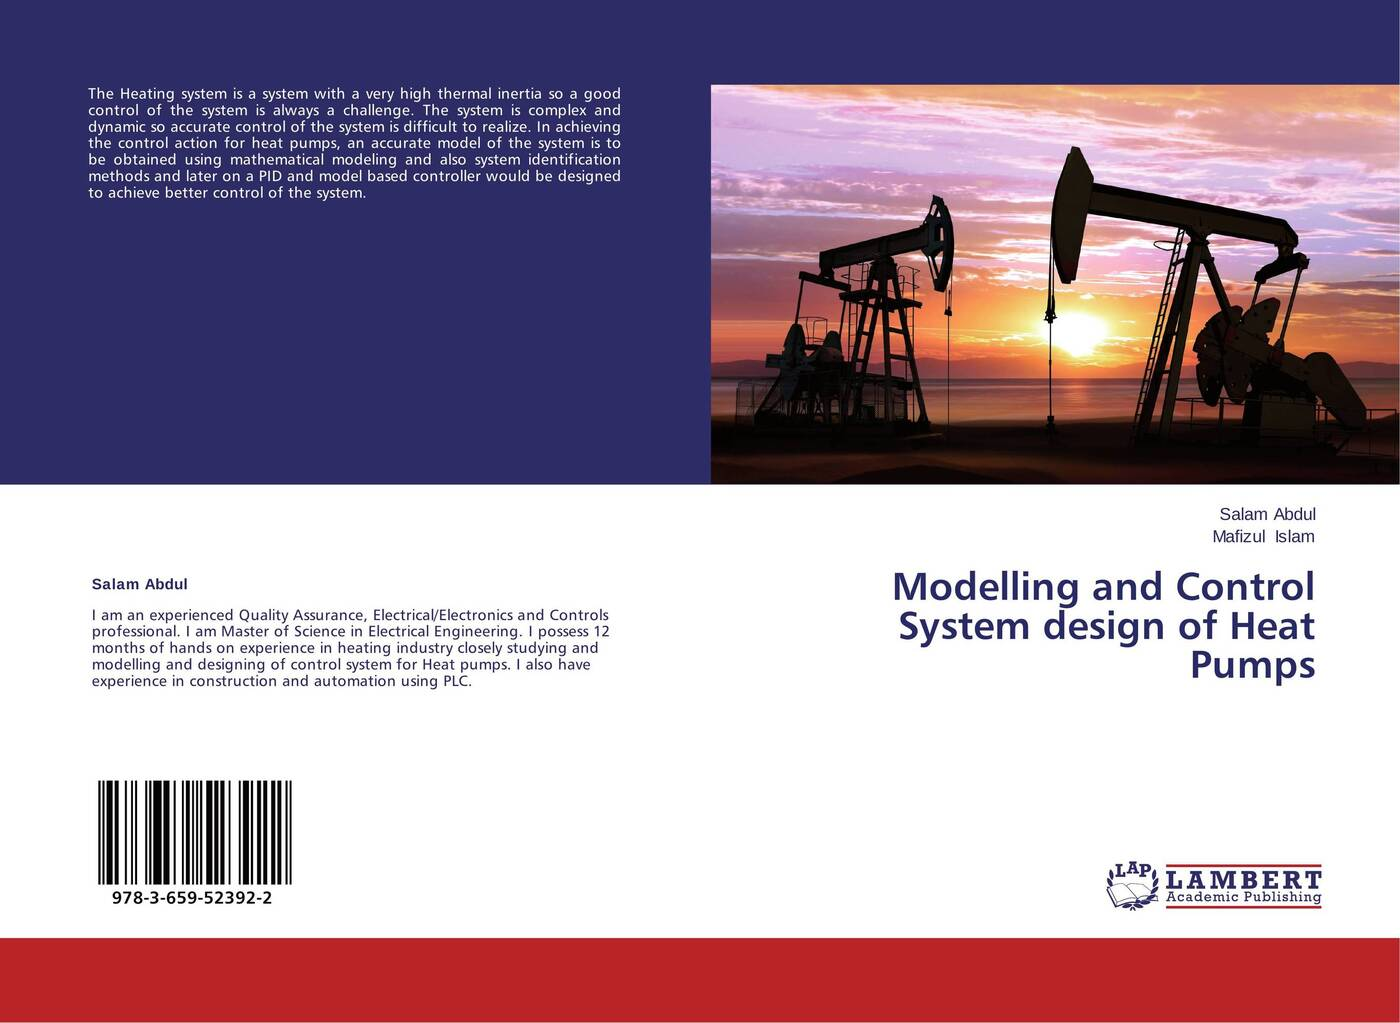 Salam Abdul and Mafizul Islam Modelling and Control System design of Heat Pumps mohammad shahidehpour handbook of electrical power system dynamics modeling stability and control